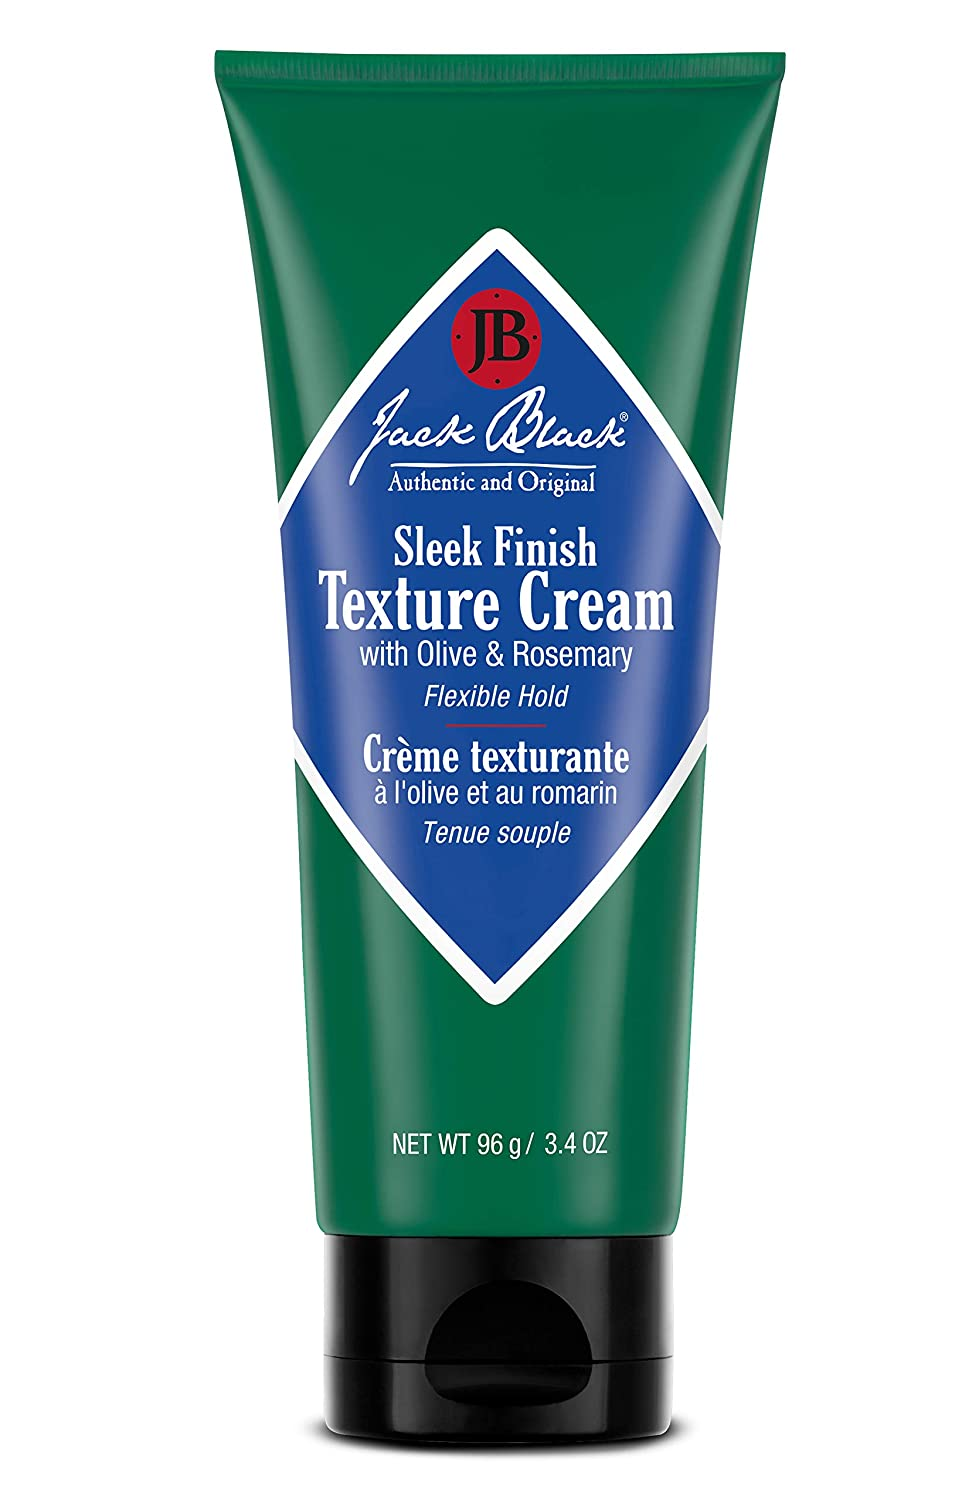 Jack Black - Sleek Finish Texture Cream, 3.4 fl oz - Anti-Frizz, Flexible Hold, Lightweight Cream, Natural Oils, Botanical Extracts, Amino Acids, Fragrance-Free, Non-Greasy Formula